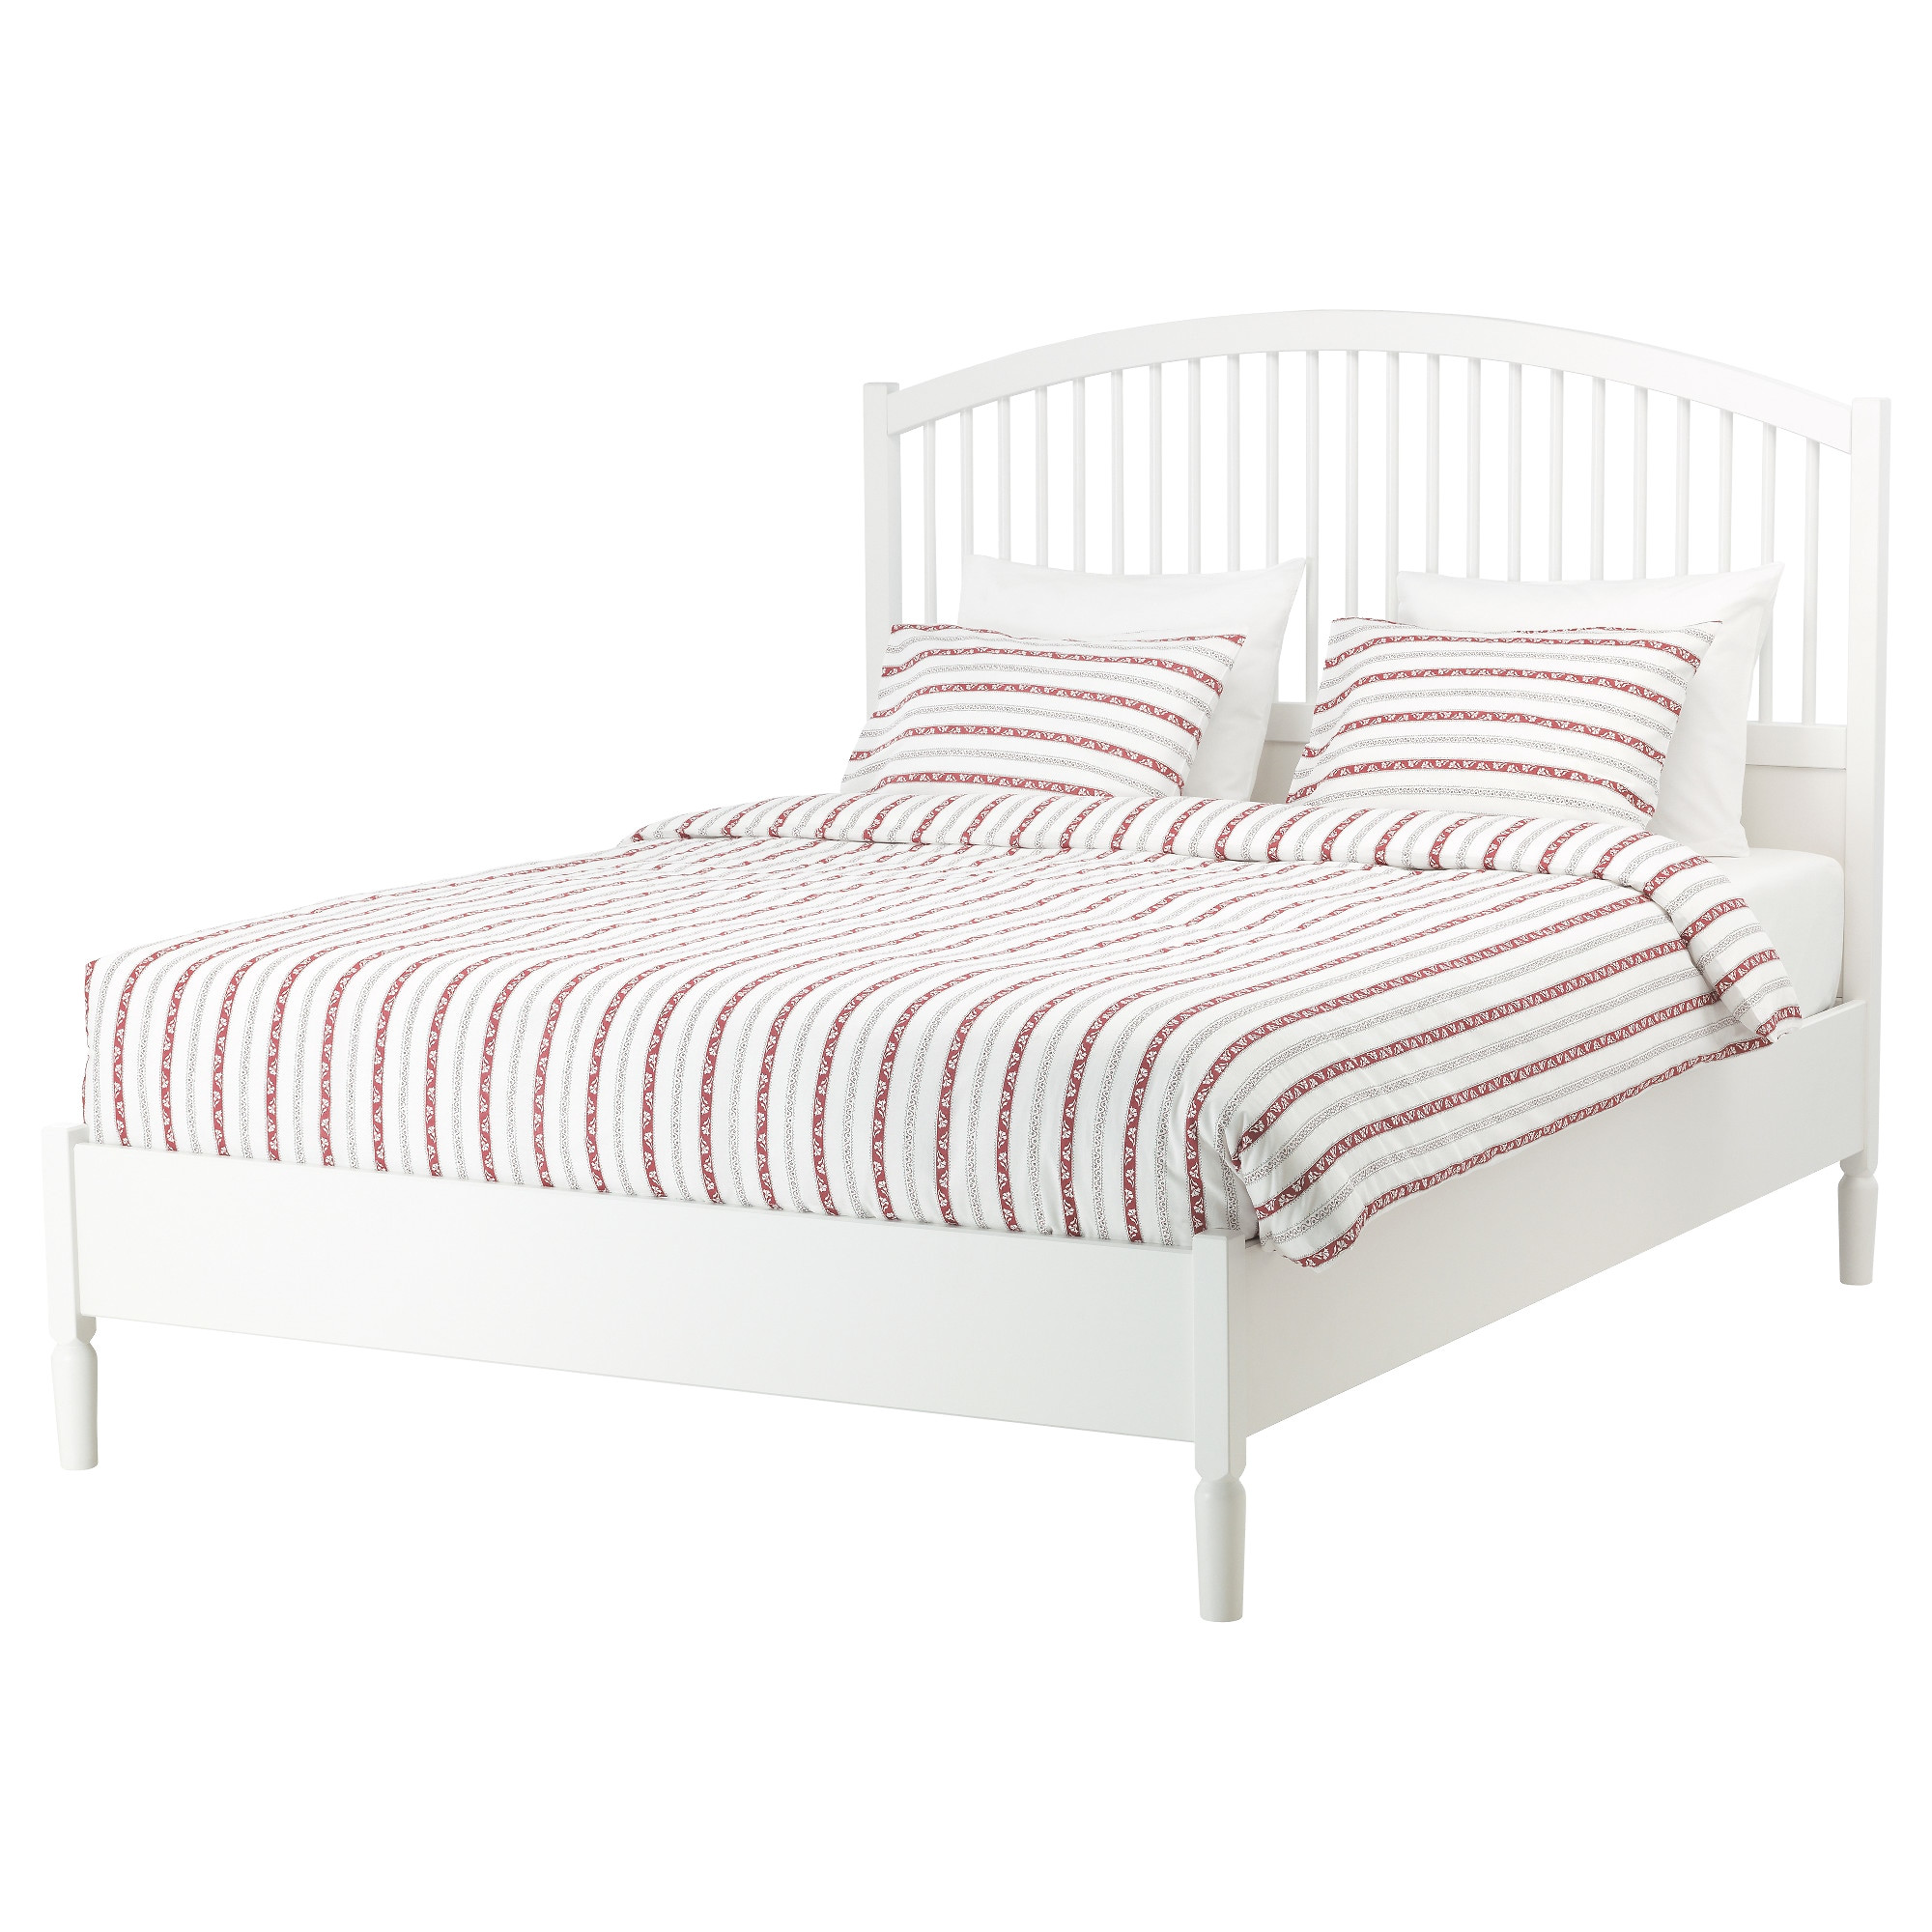 ikea tyssedal bed frame adjustable bed sides allow you to use mattresses of different thicknesses